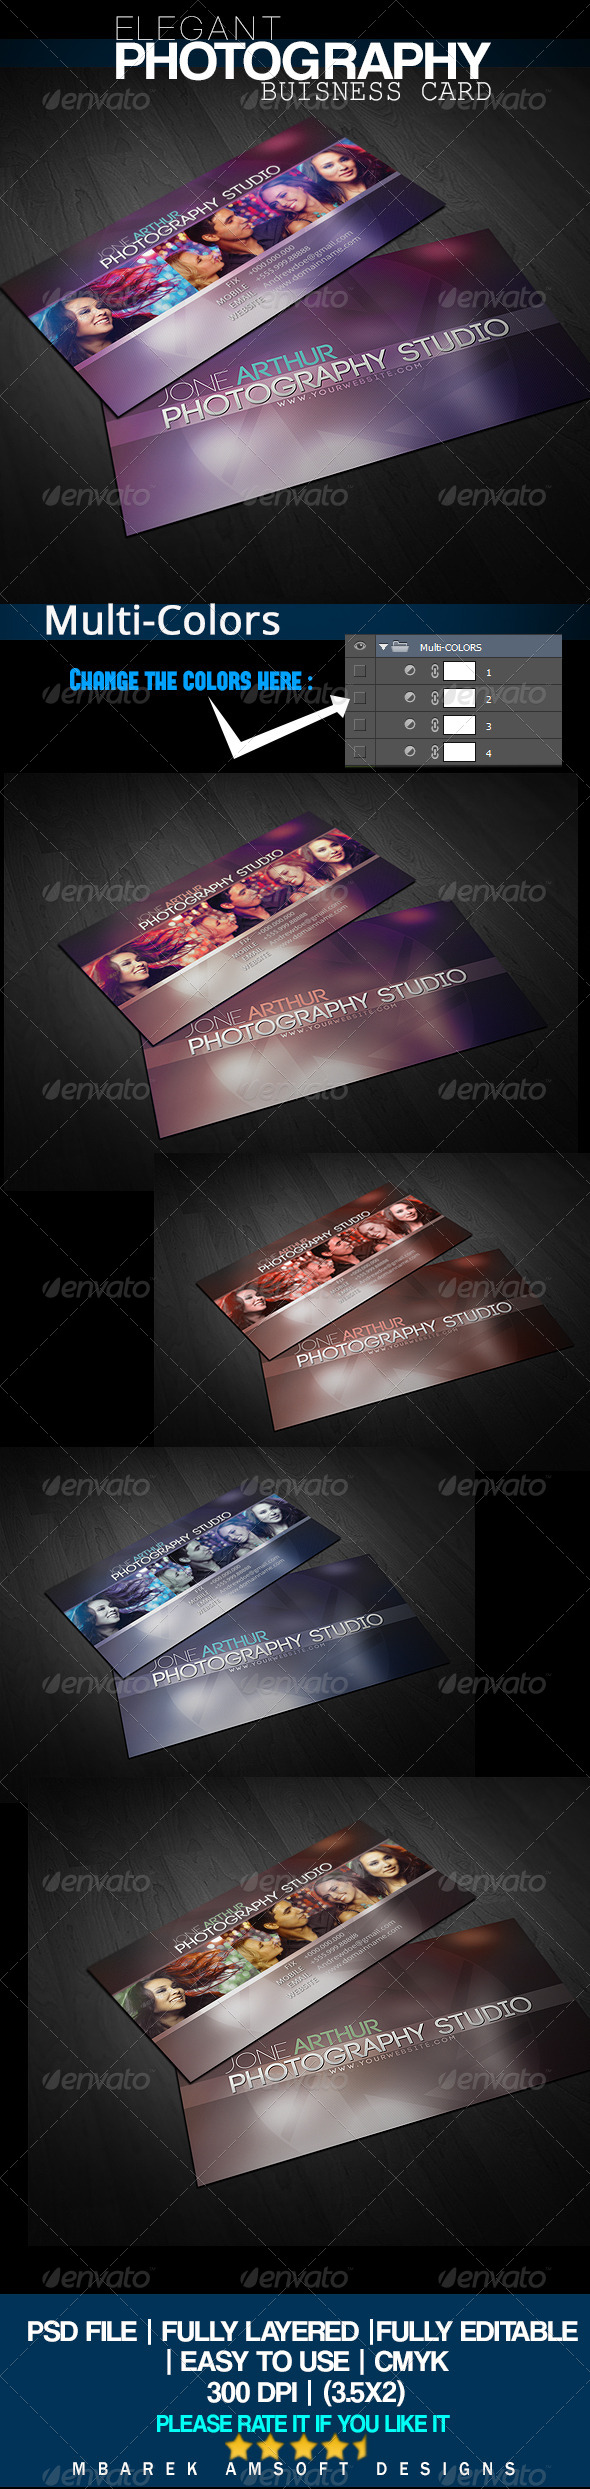 GraphicRiver Elegant Photography business card 5028112